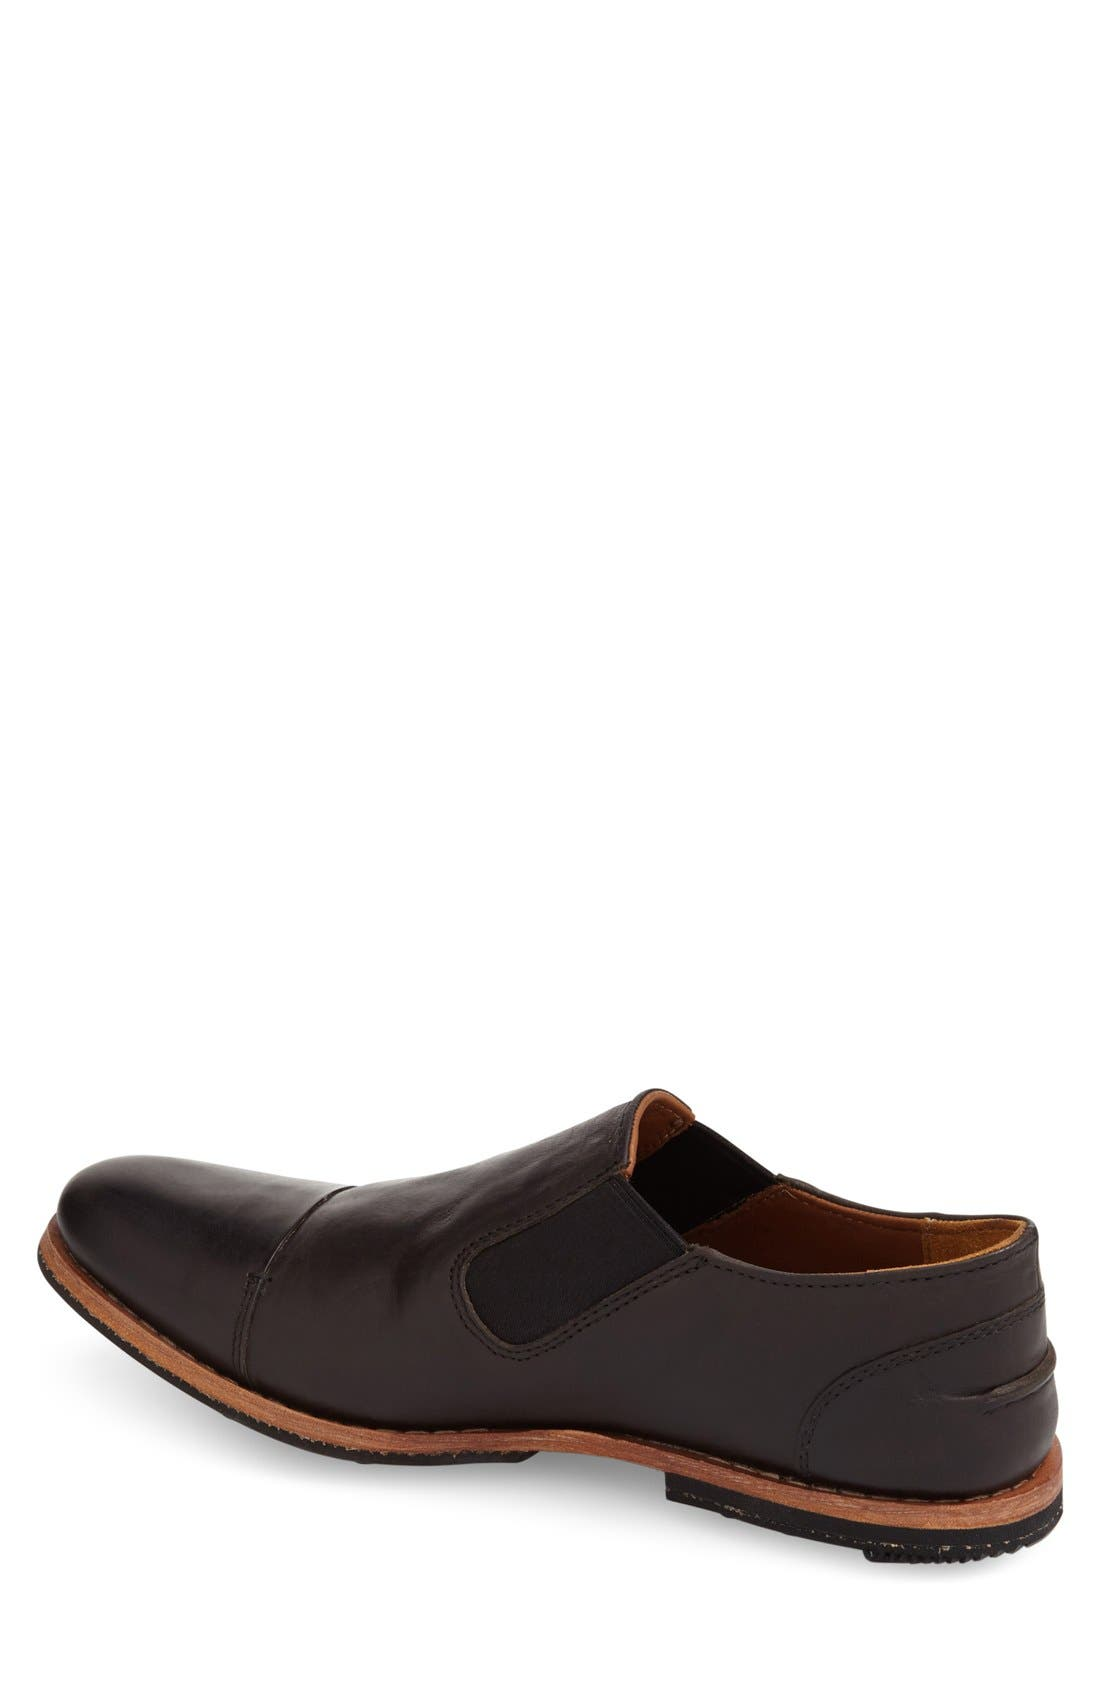 'Lost History' Venetian Loafer,                             Alternate thumbnail 8, color,